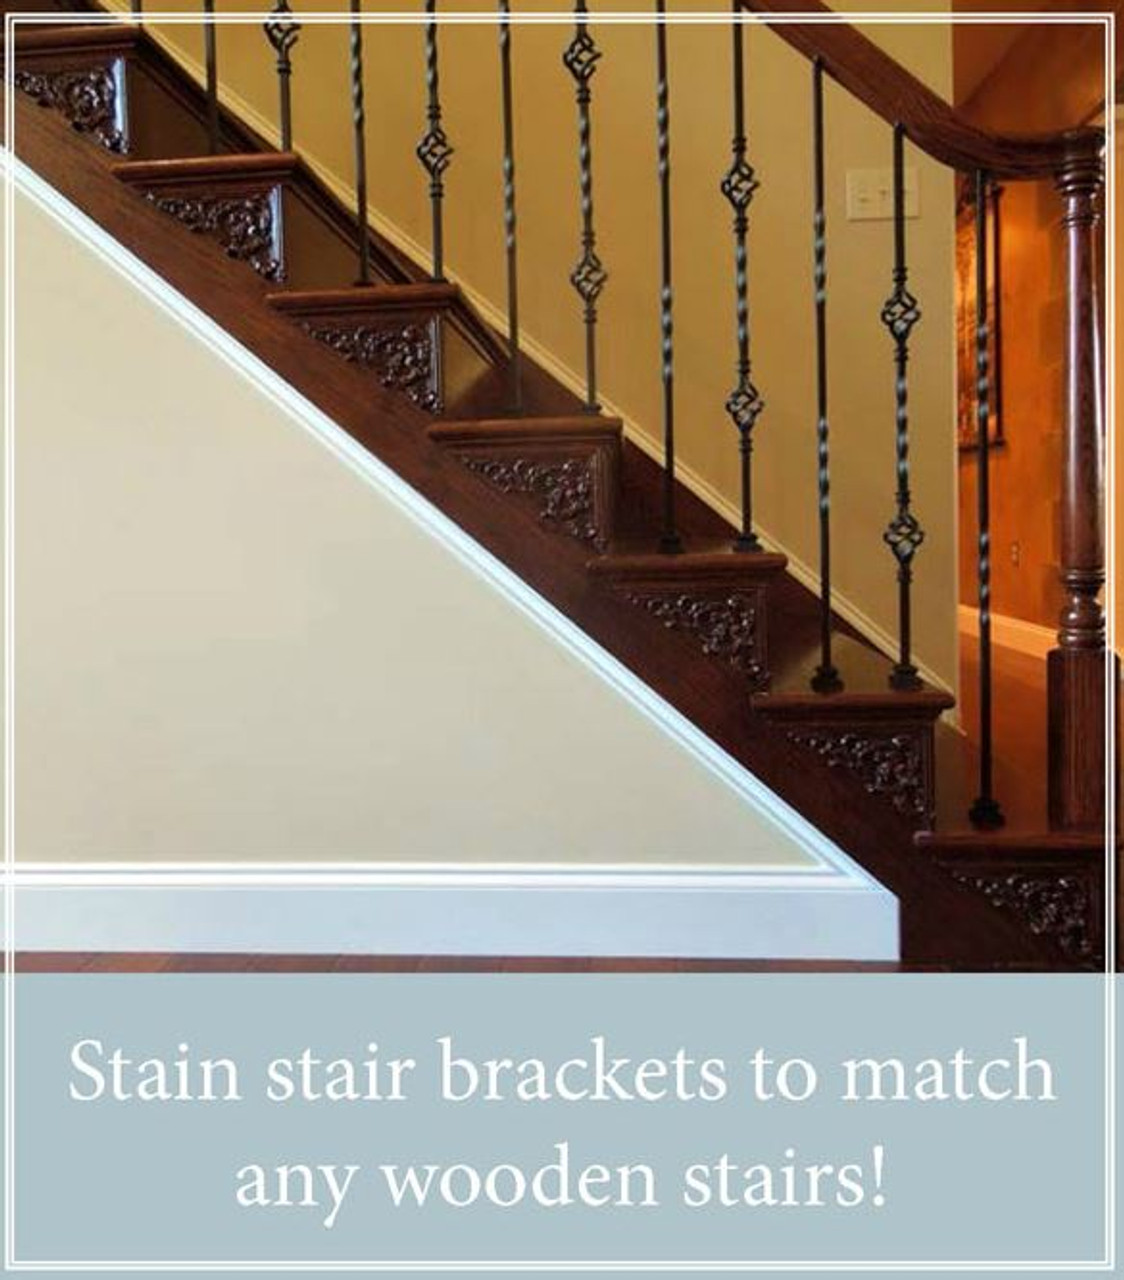 Stain stair brackets to mach any wood stairs